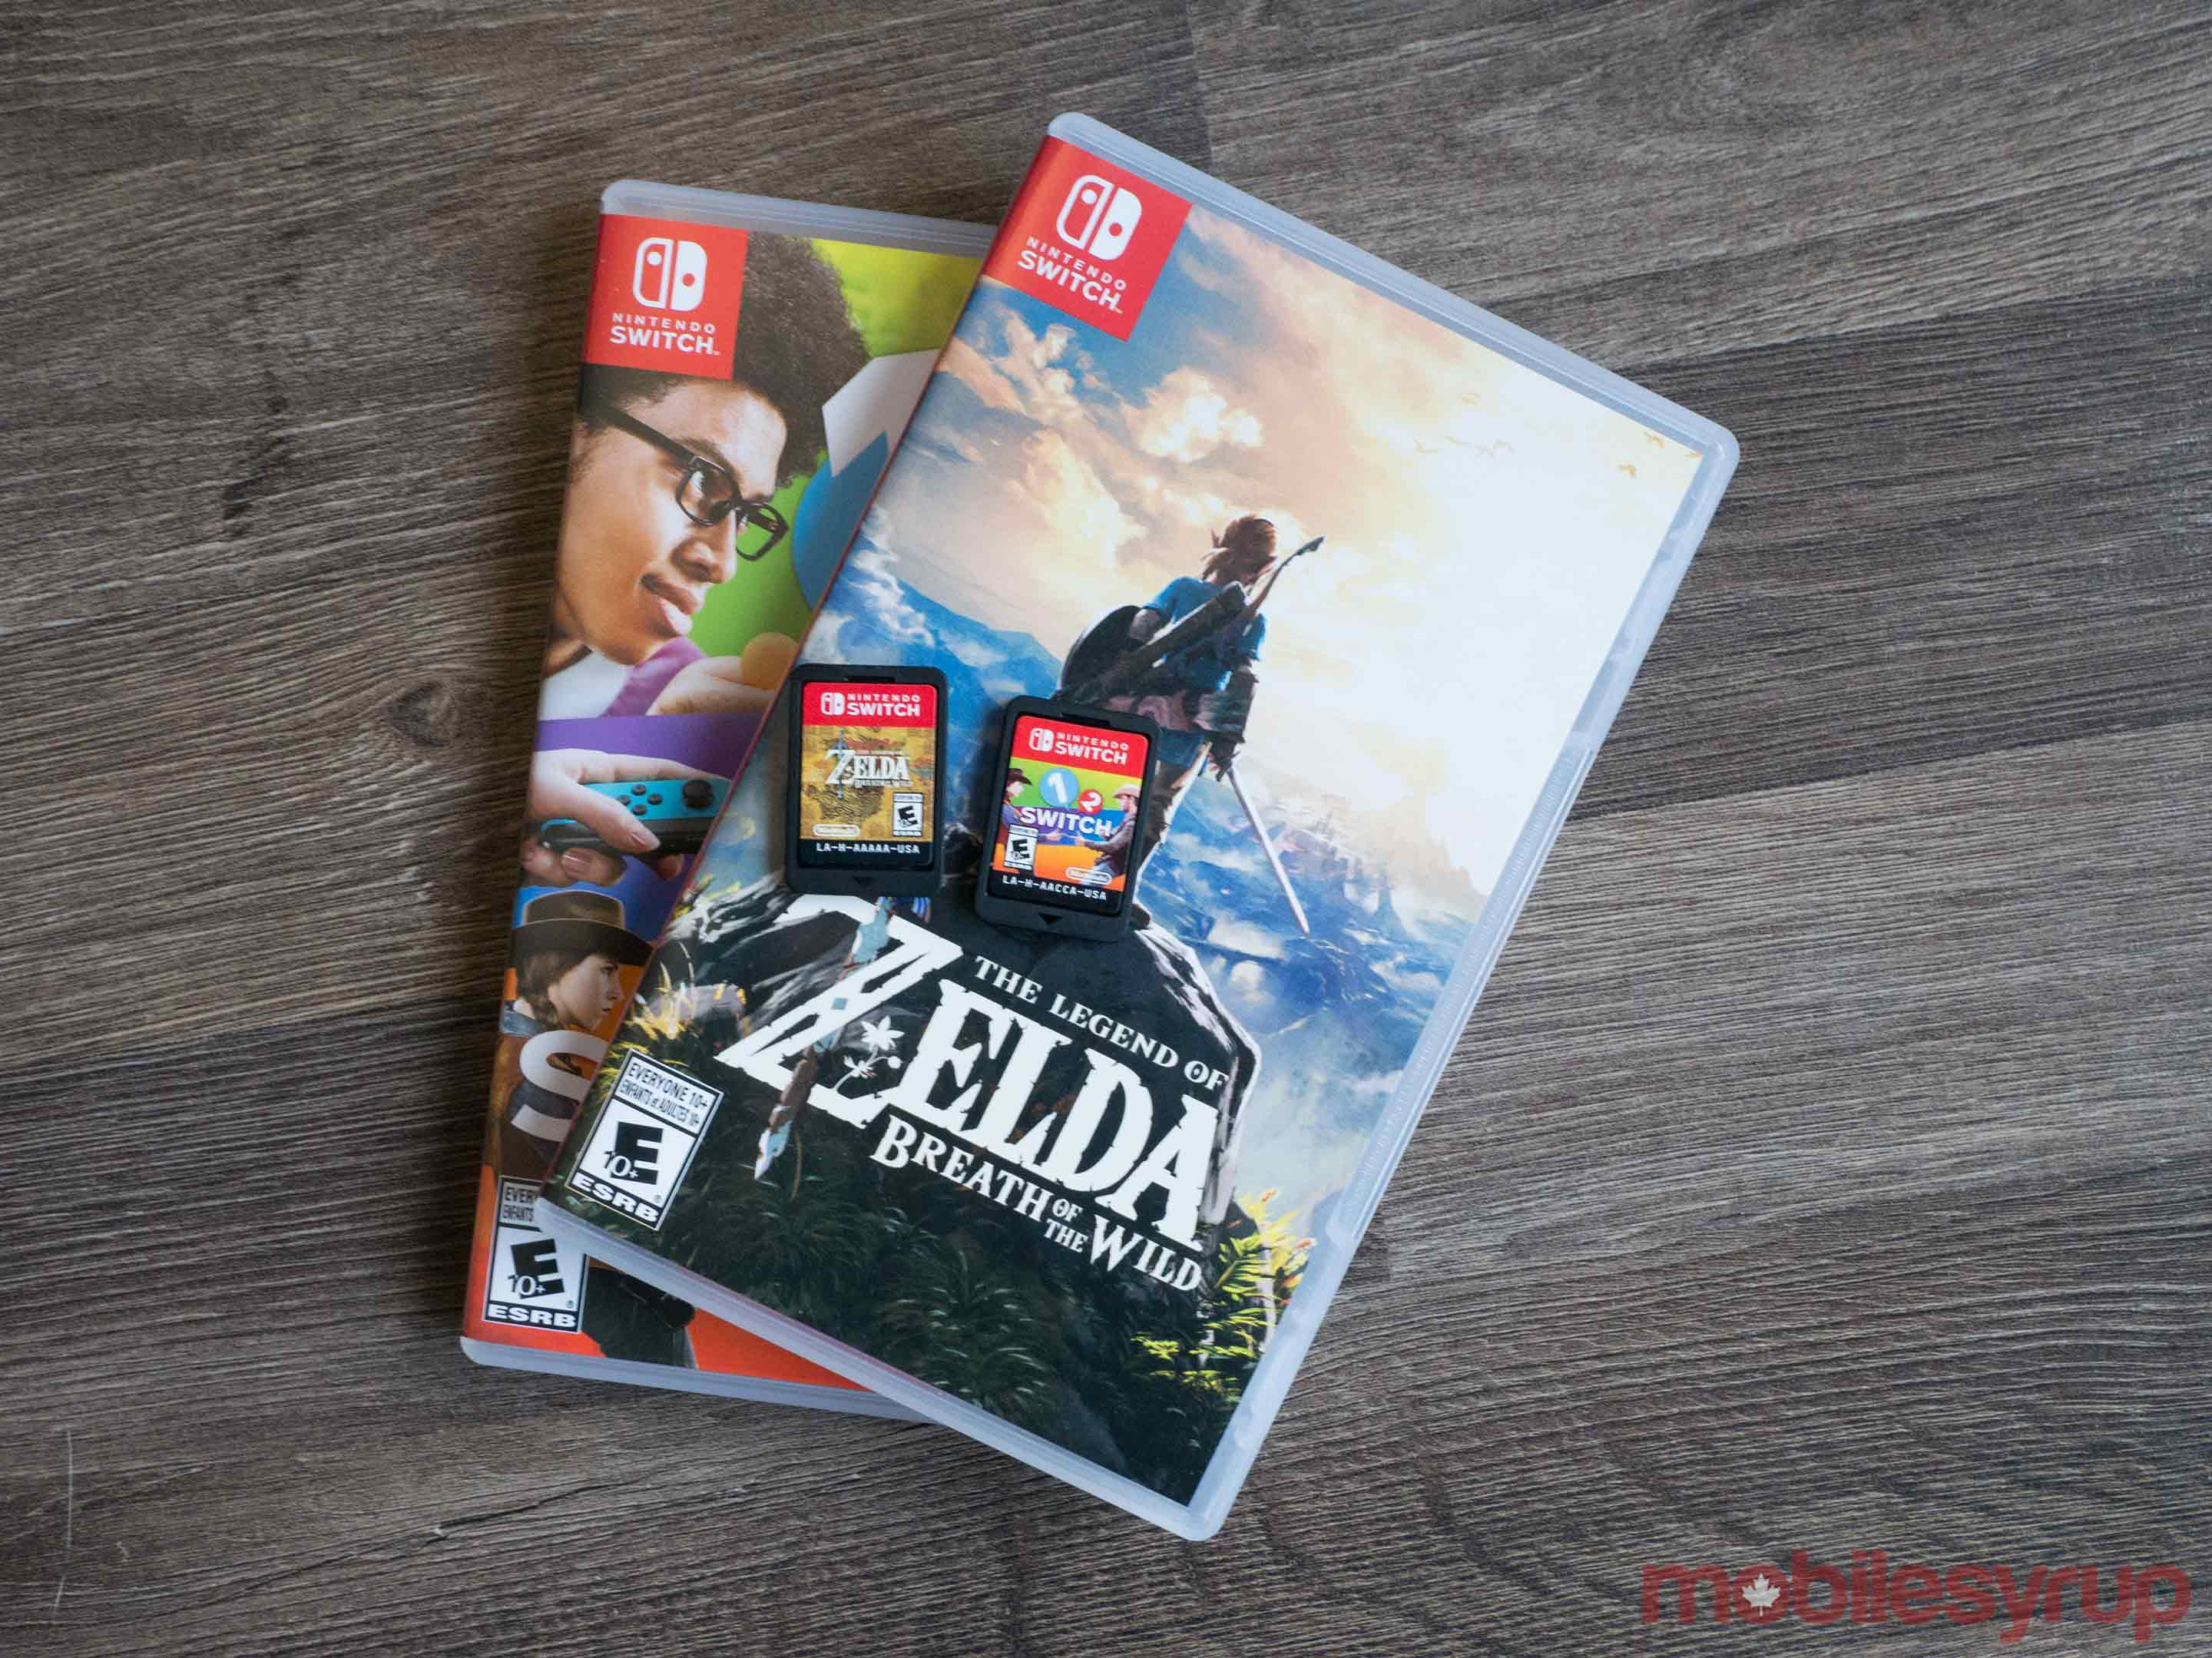 The Legend of Zelda Breath of the Wild and 1-2 Switch